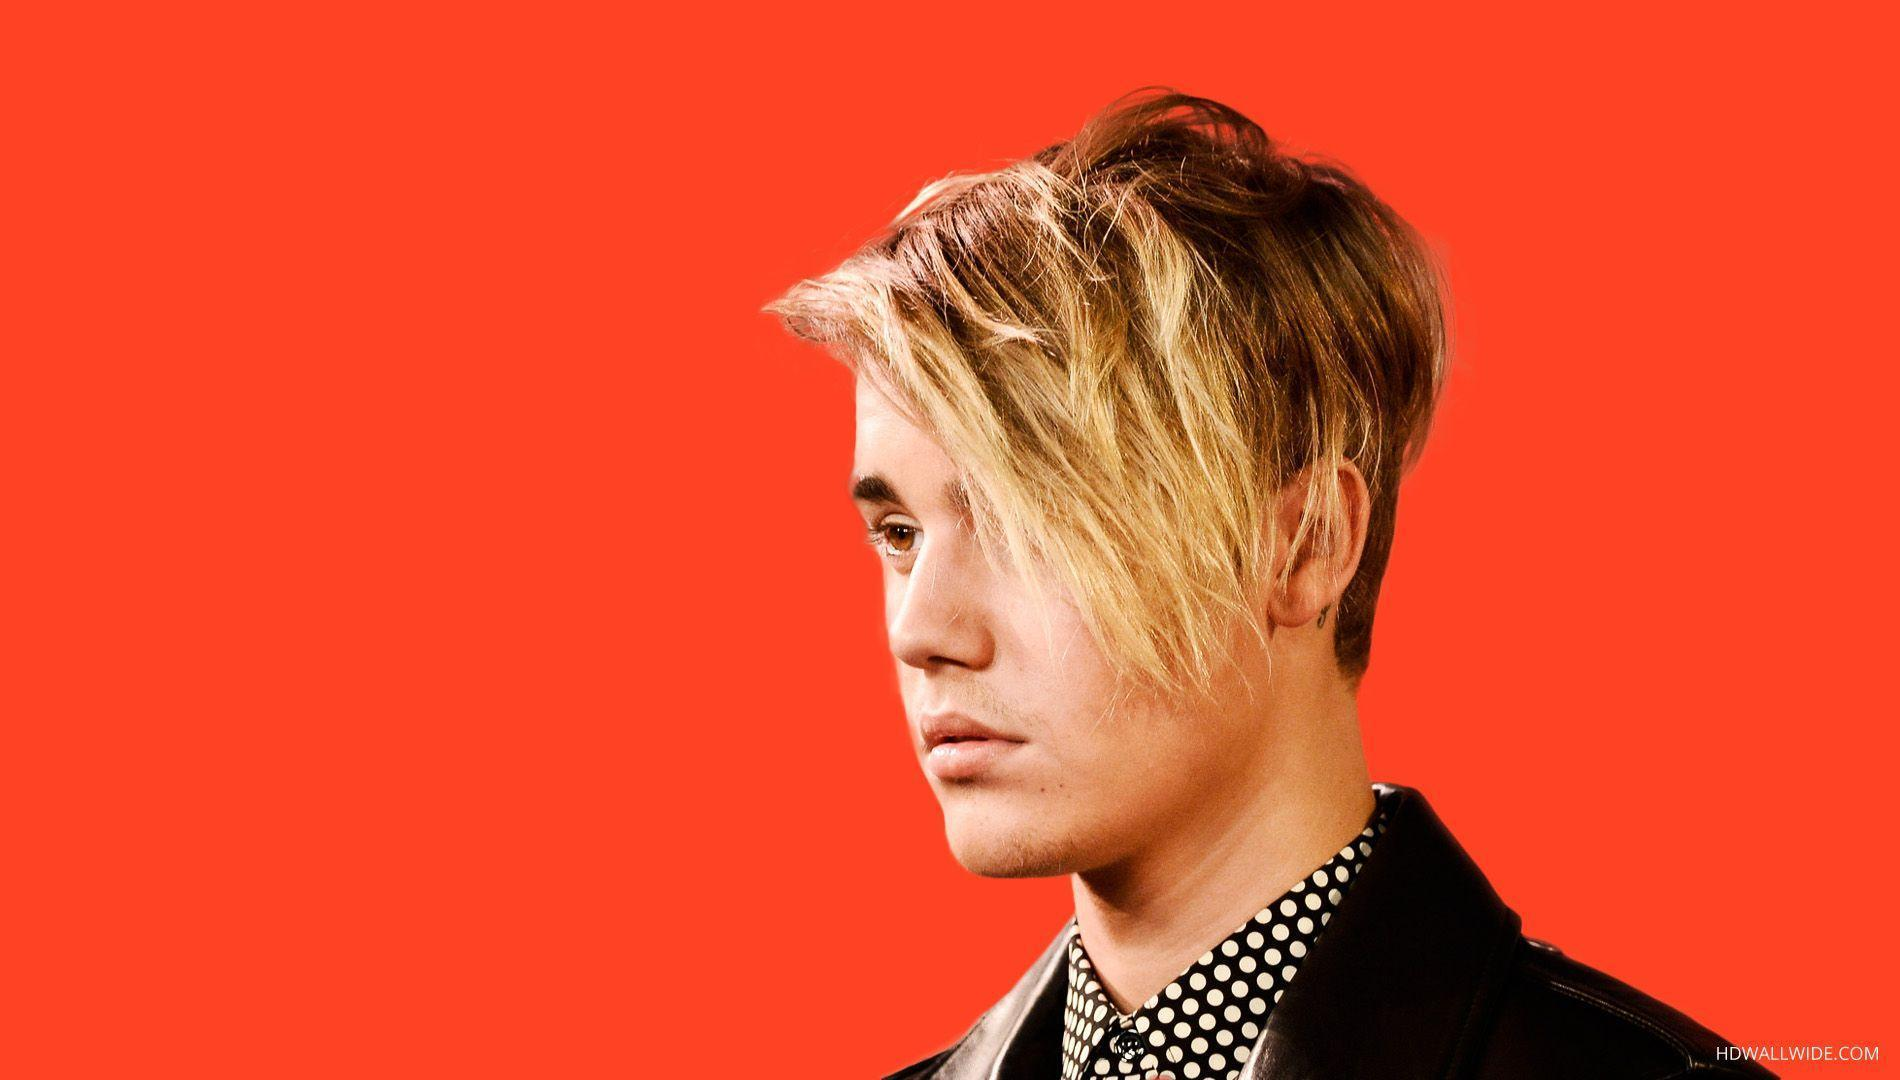 Justin Bieber Haircut Name Images Haircut Ideas For Women - Justin bieber new hairstyle in 2016